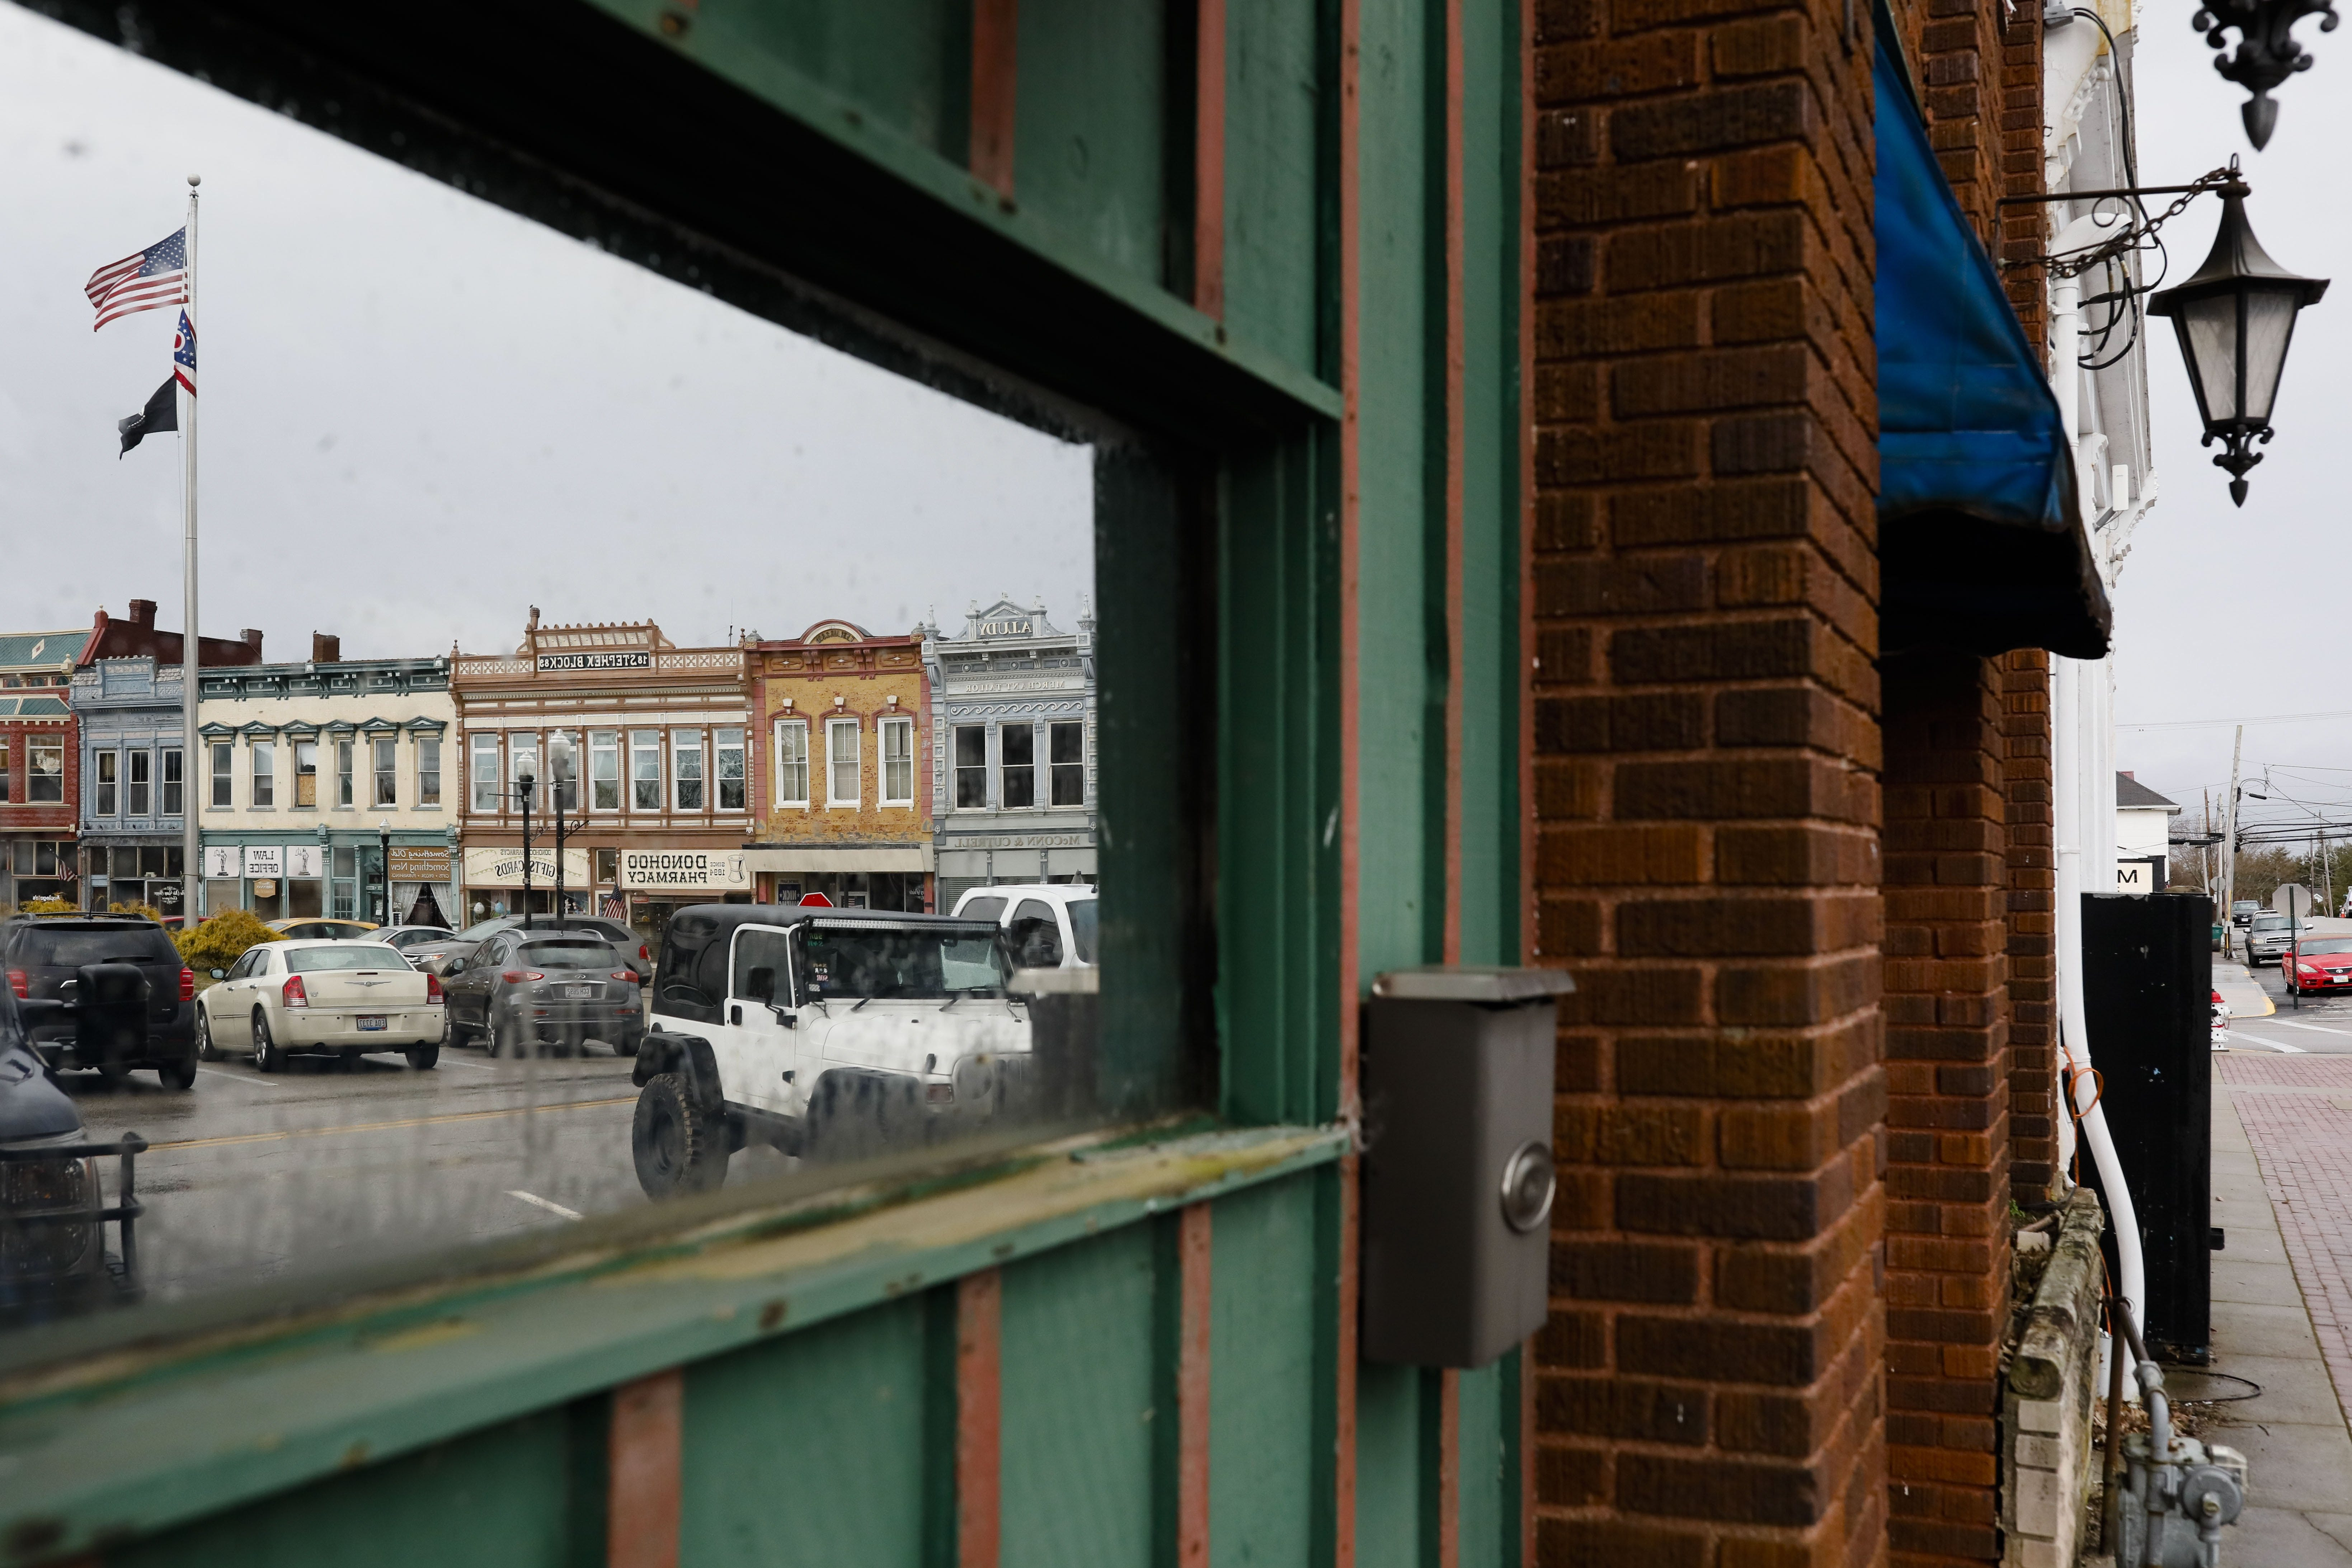 Buildings on the town square are reflected in a windown on Tuesday, March 3, 2020 in Georgetown, Ohio. [Joshua A. Bickel/Dispatch]